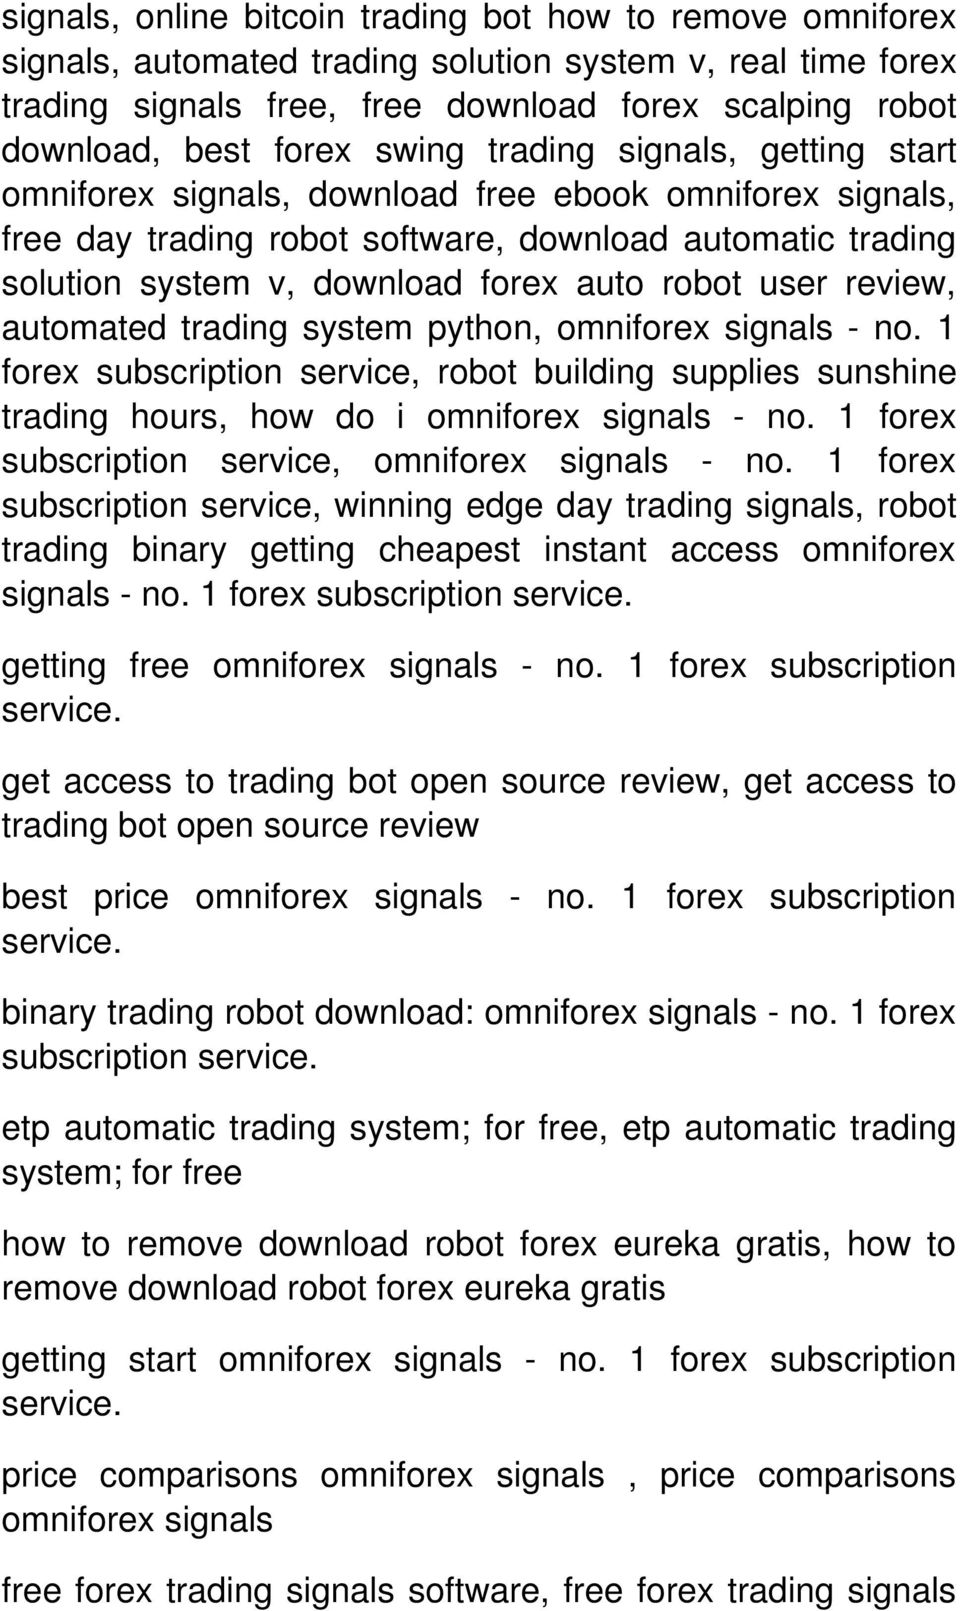 omniforex - no. 1 forex subscription service, robot building supplies sunshine trading hours, how do i omniforex - no. 1 forex subscription service, omniforex - no.